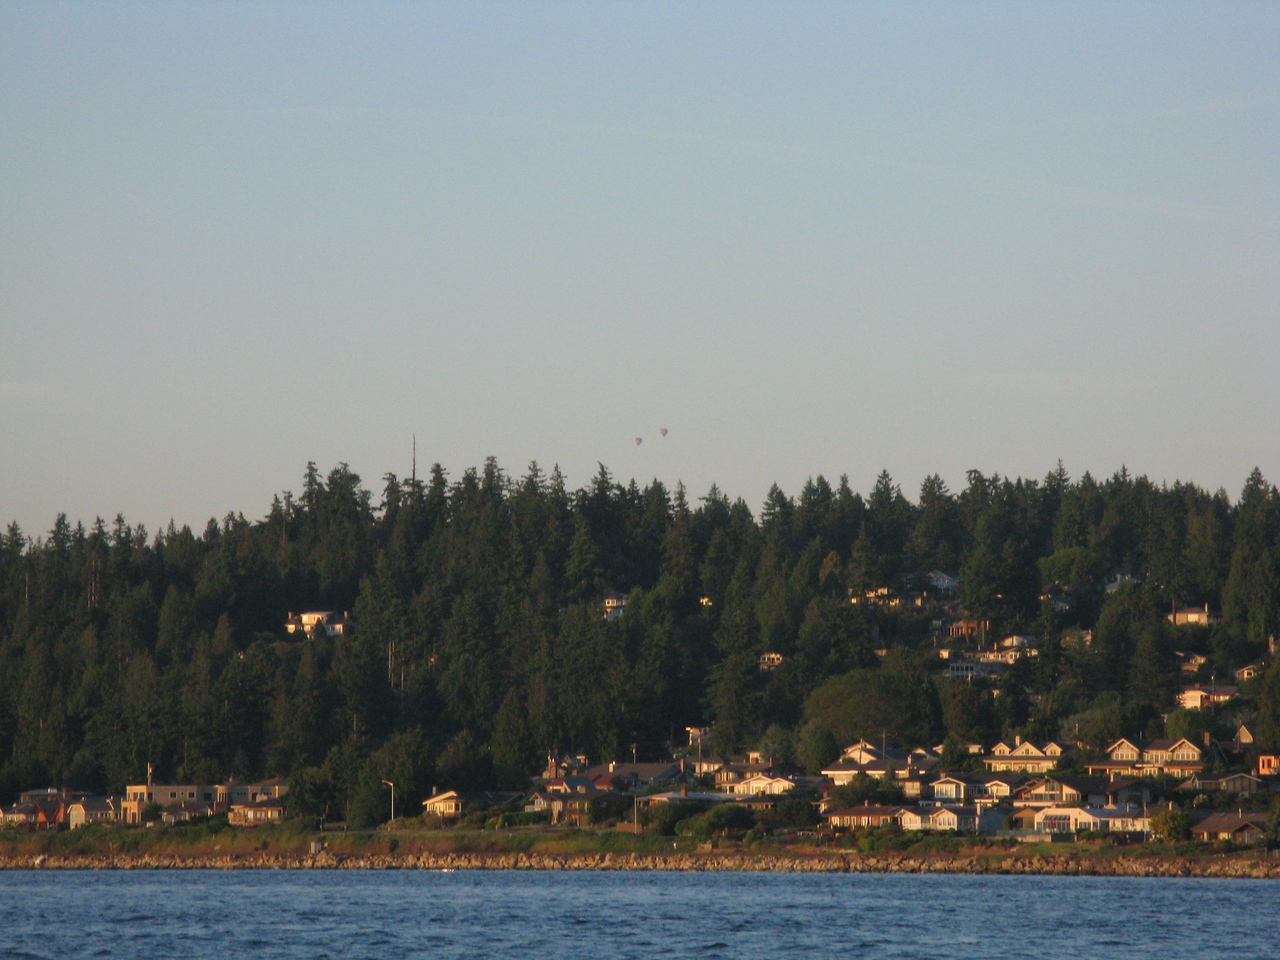 The two faint dots above the horizon in the middle of the picture are hot air balloons.  They depart from Snohomish, Washington, which is about 20 miles from Edmonds.